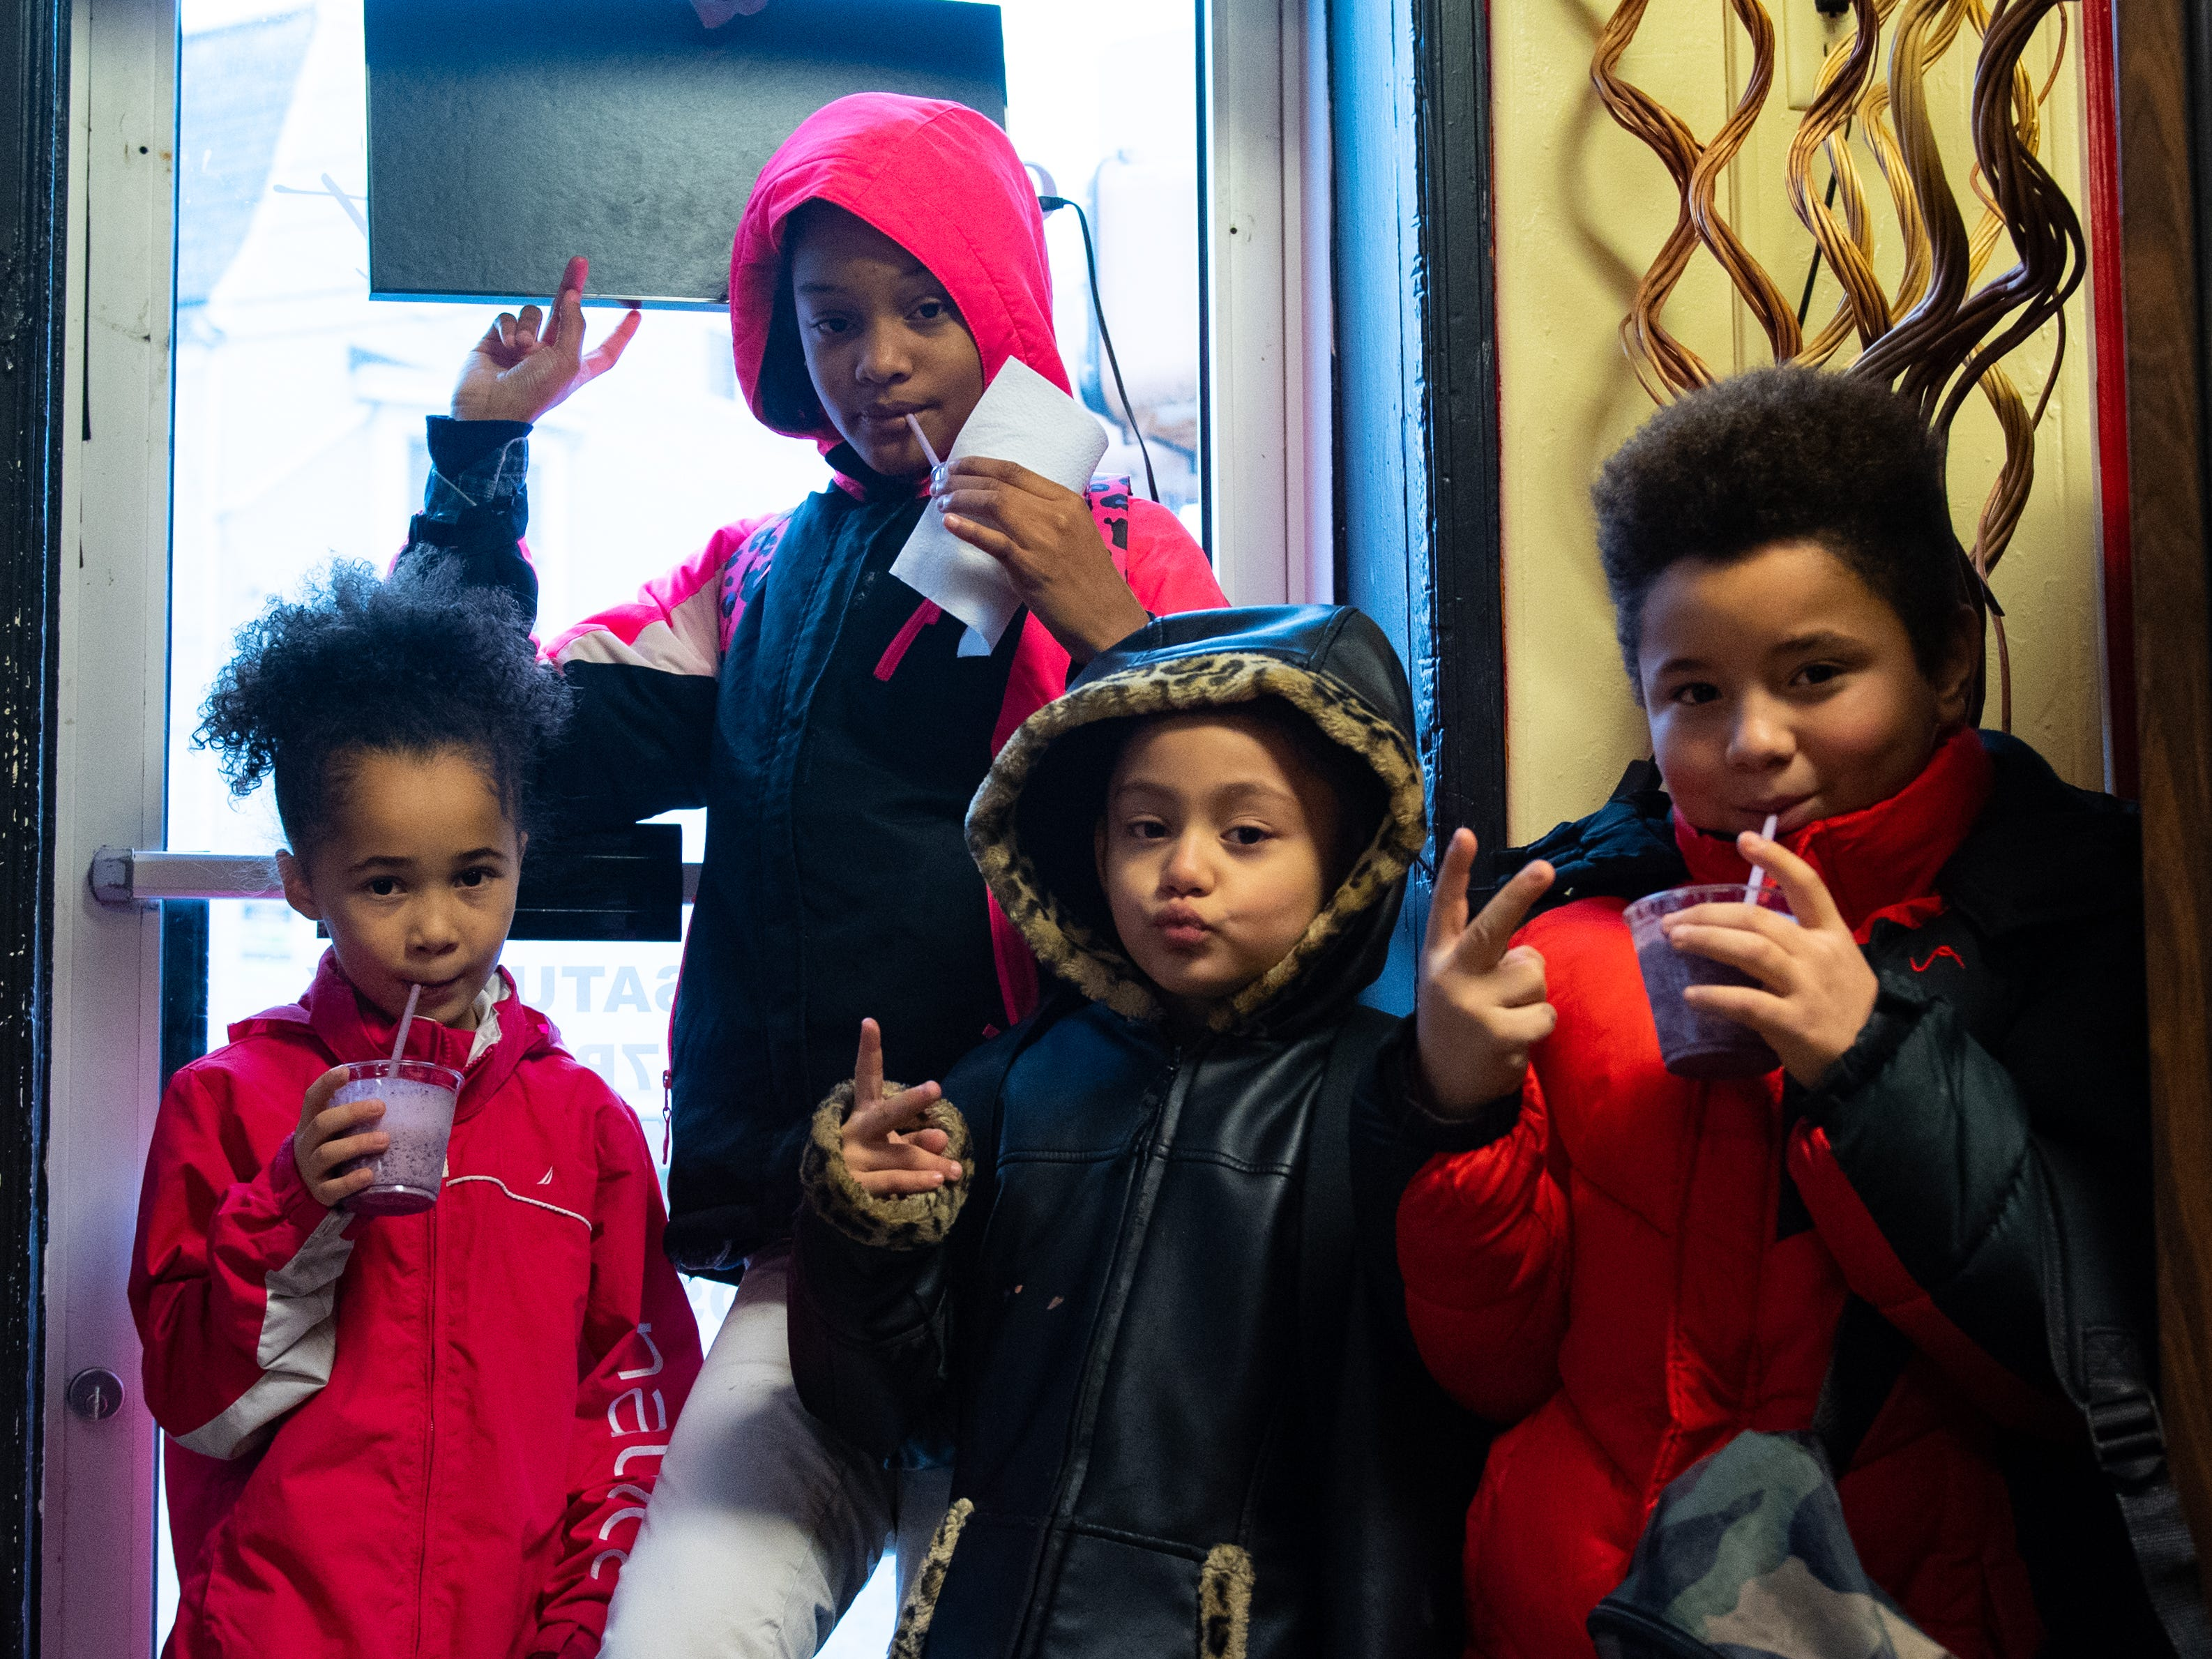 The young customers are all smiles as they suck down their frozen treats at Cornbread West, November 27, 2018.